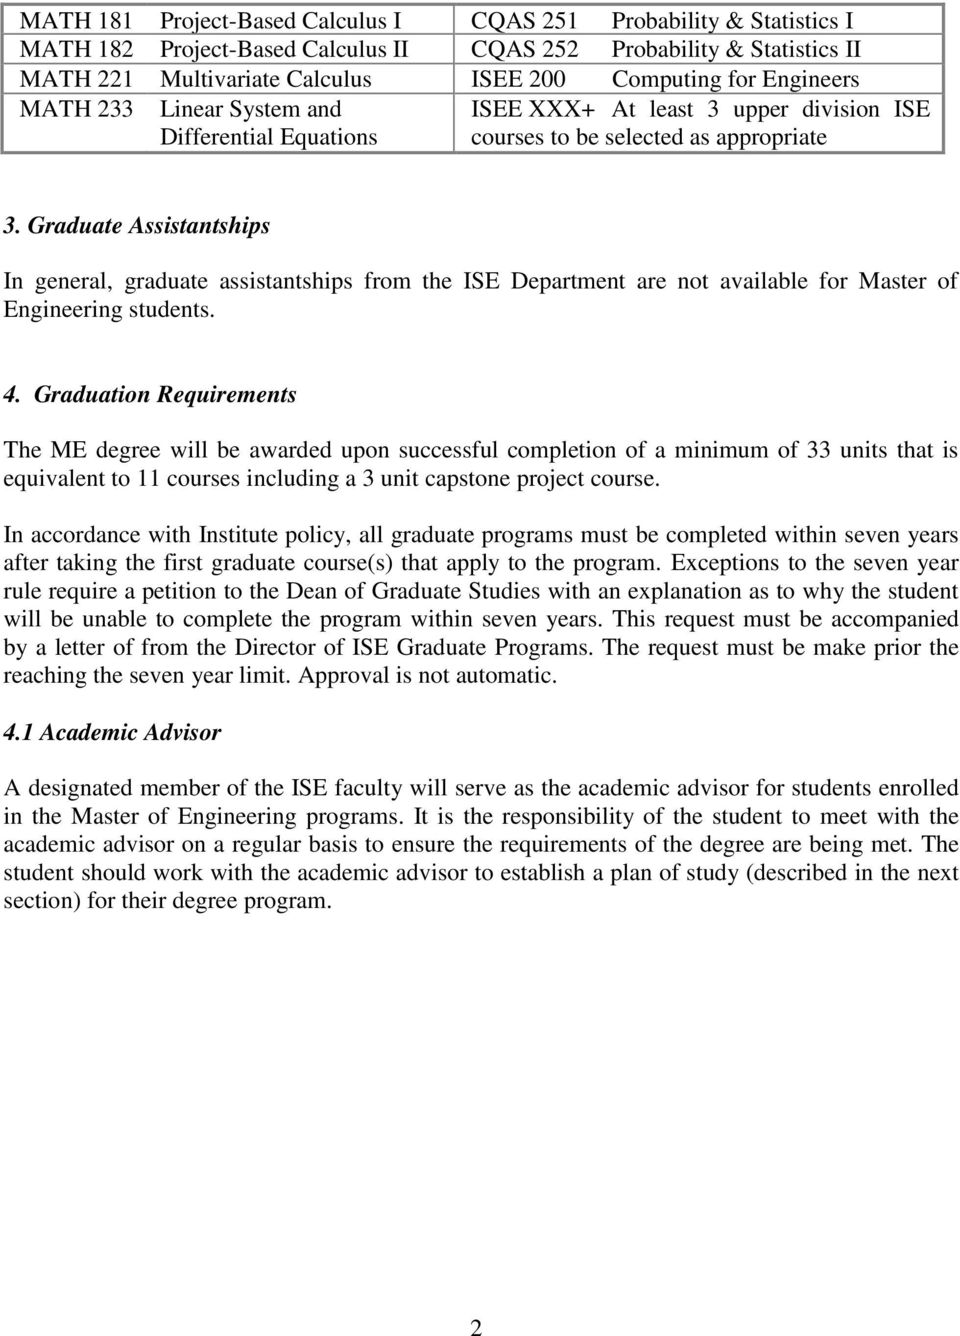 Graduate Assistantships In general, graduate assistantships from the ISE Department are not available for Master of Engineering students. 4.